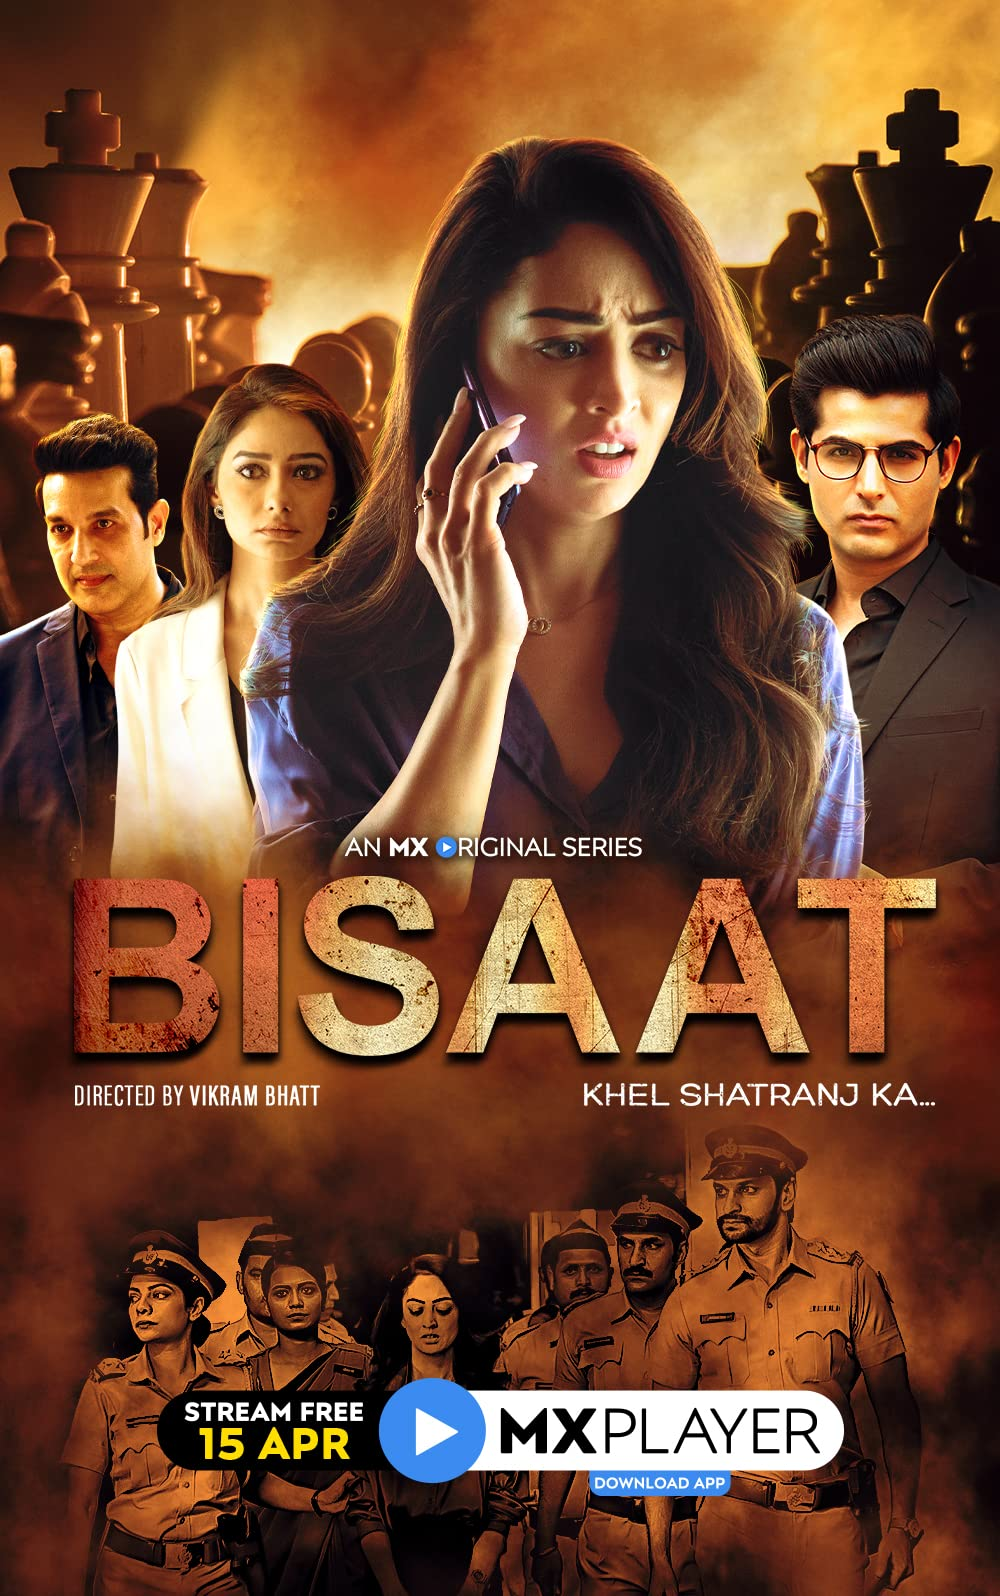 Bisaat: Khel Shatranj Ka 2021 S01 Hindi MX Original Complete Web Series 710MB HDRip Download